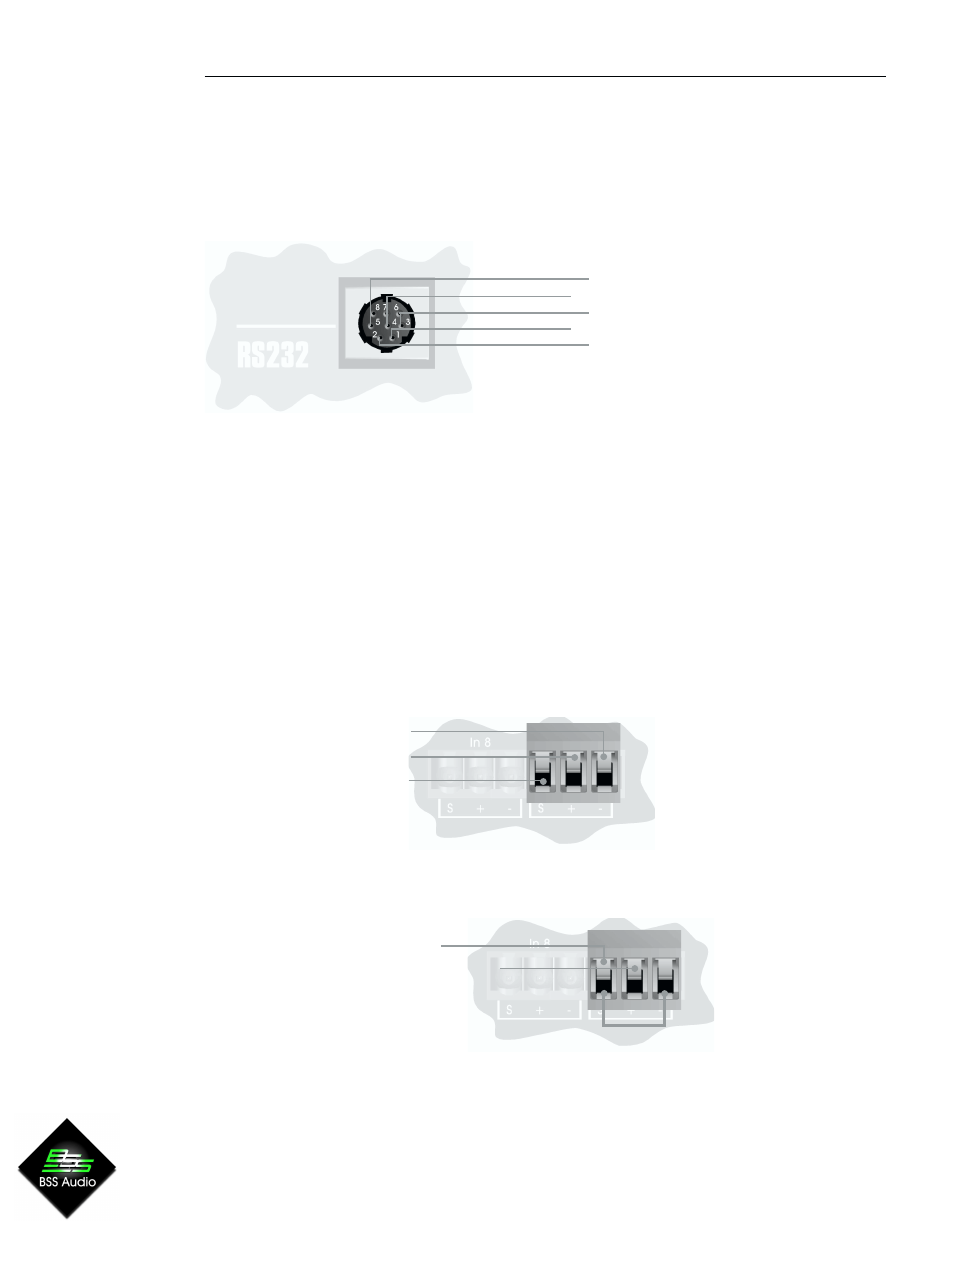 Soundweb Audio Control Cable Wiring Details Front Panel Background Image